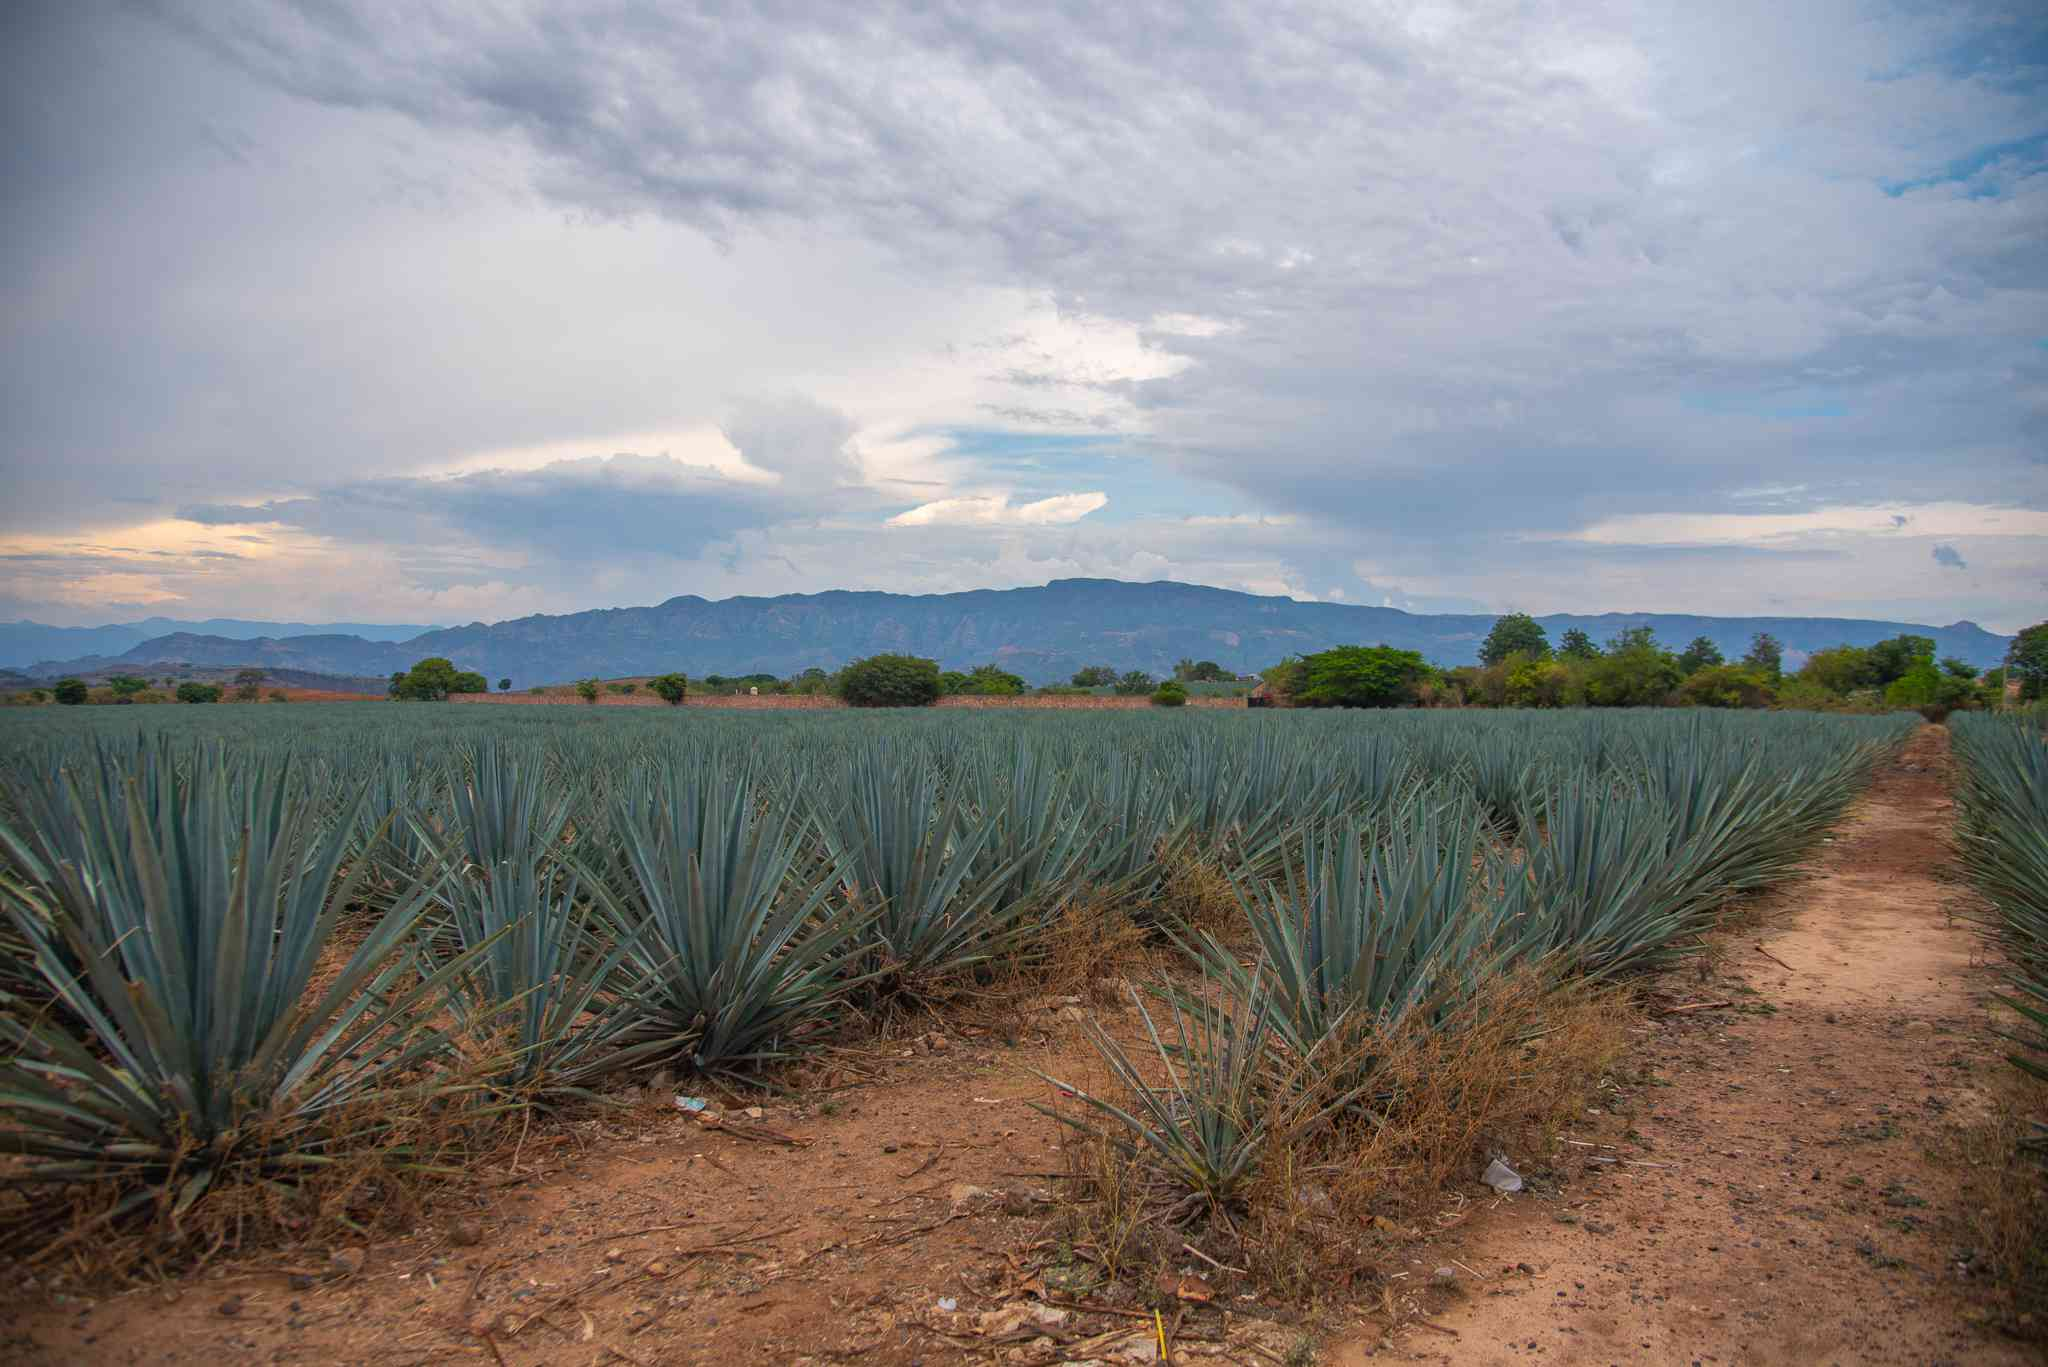 Tequila, Mexico